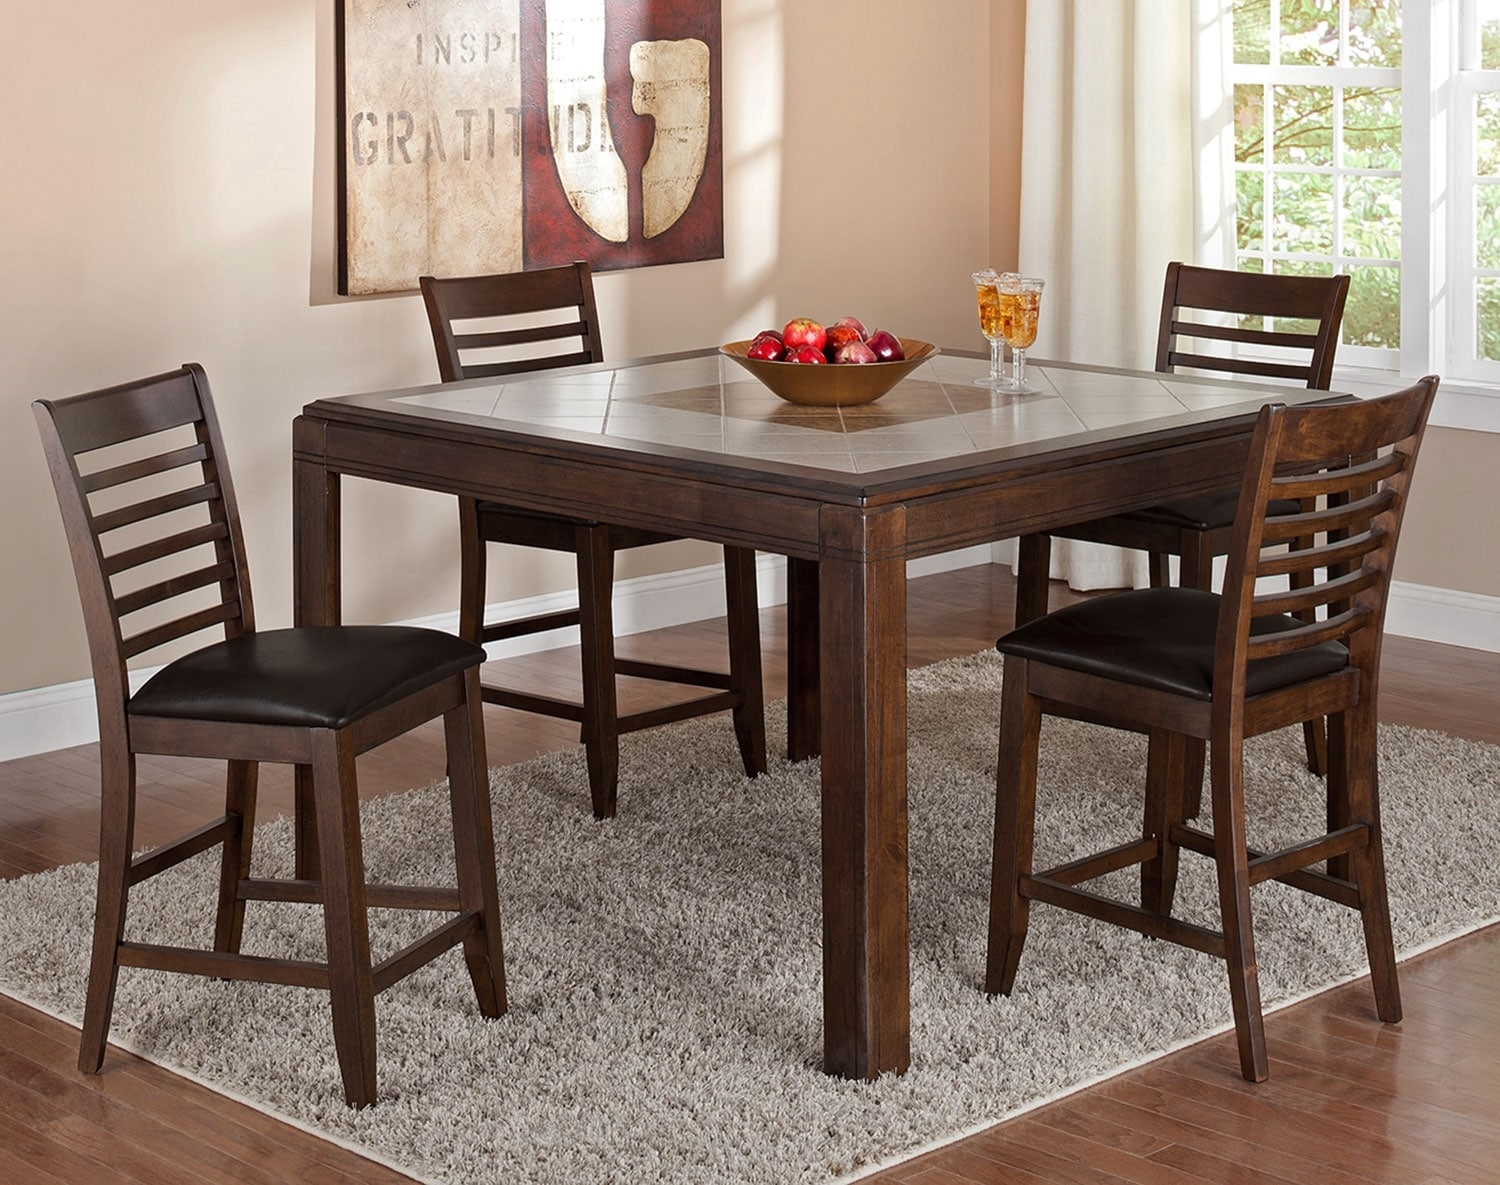 Dining Room Furniture - The Hillsboro II Collection - Counter-Height Table